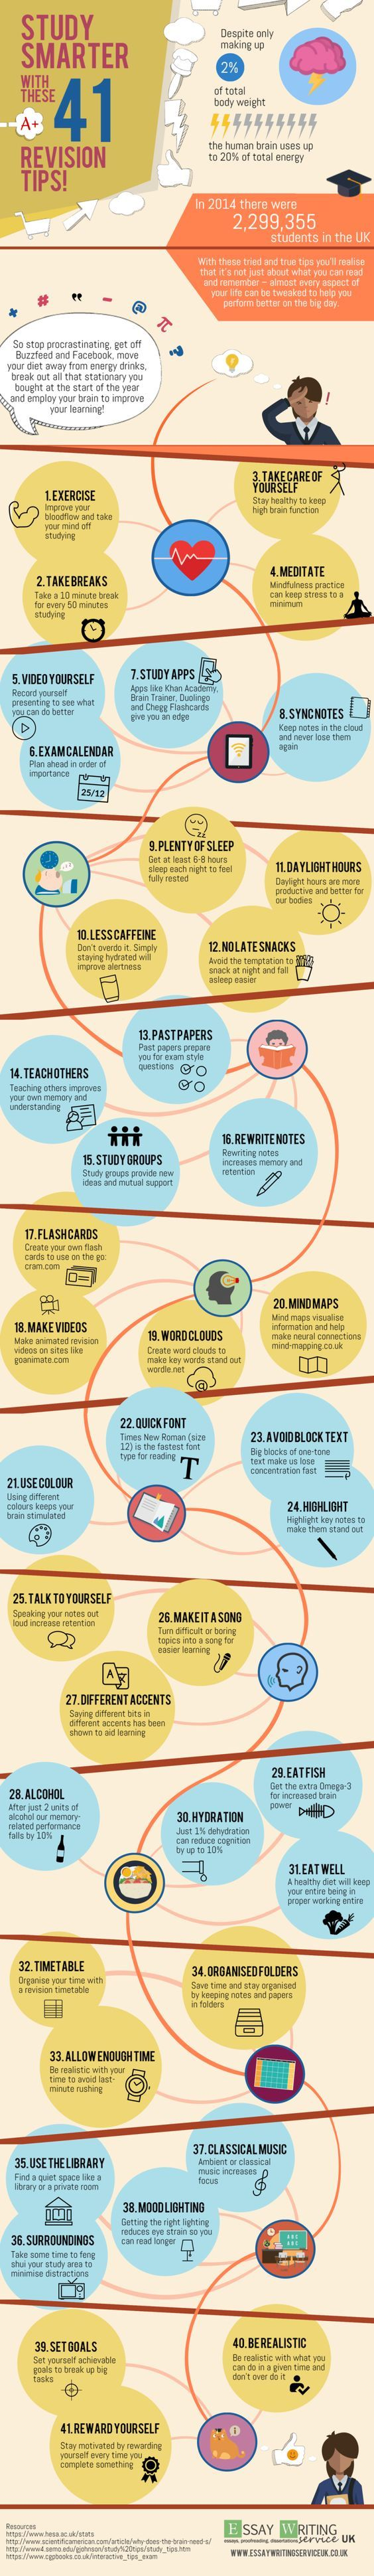 best ideas about revision timetable maker high 41 revision tips to study smarter infographic elearninginfographics com